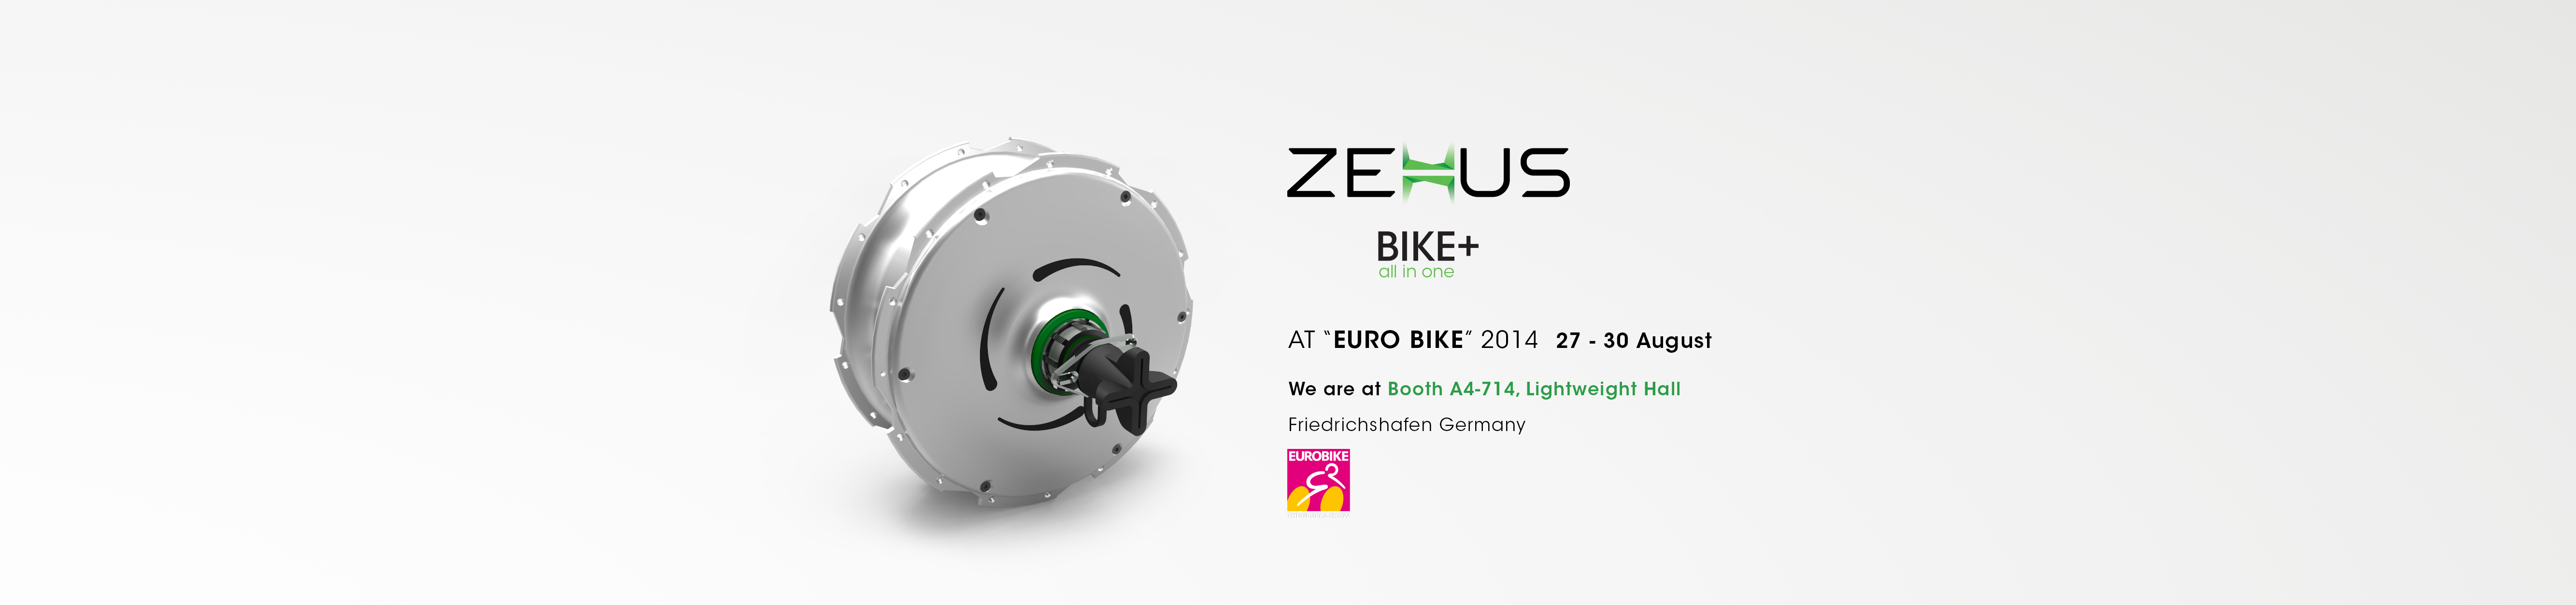 ZEHUS Bike+ all in one – Eurobike